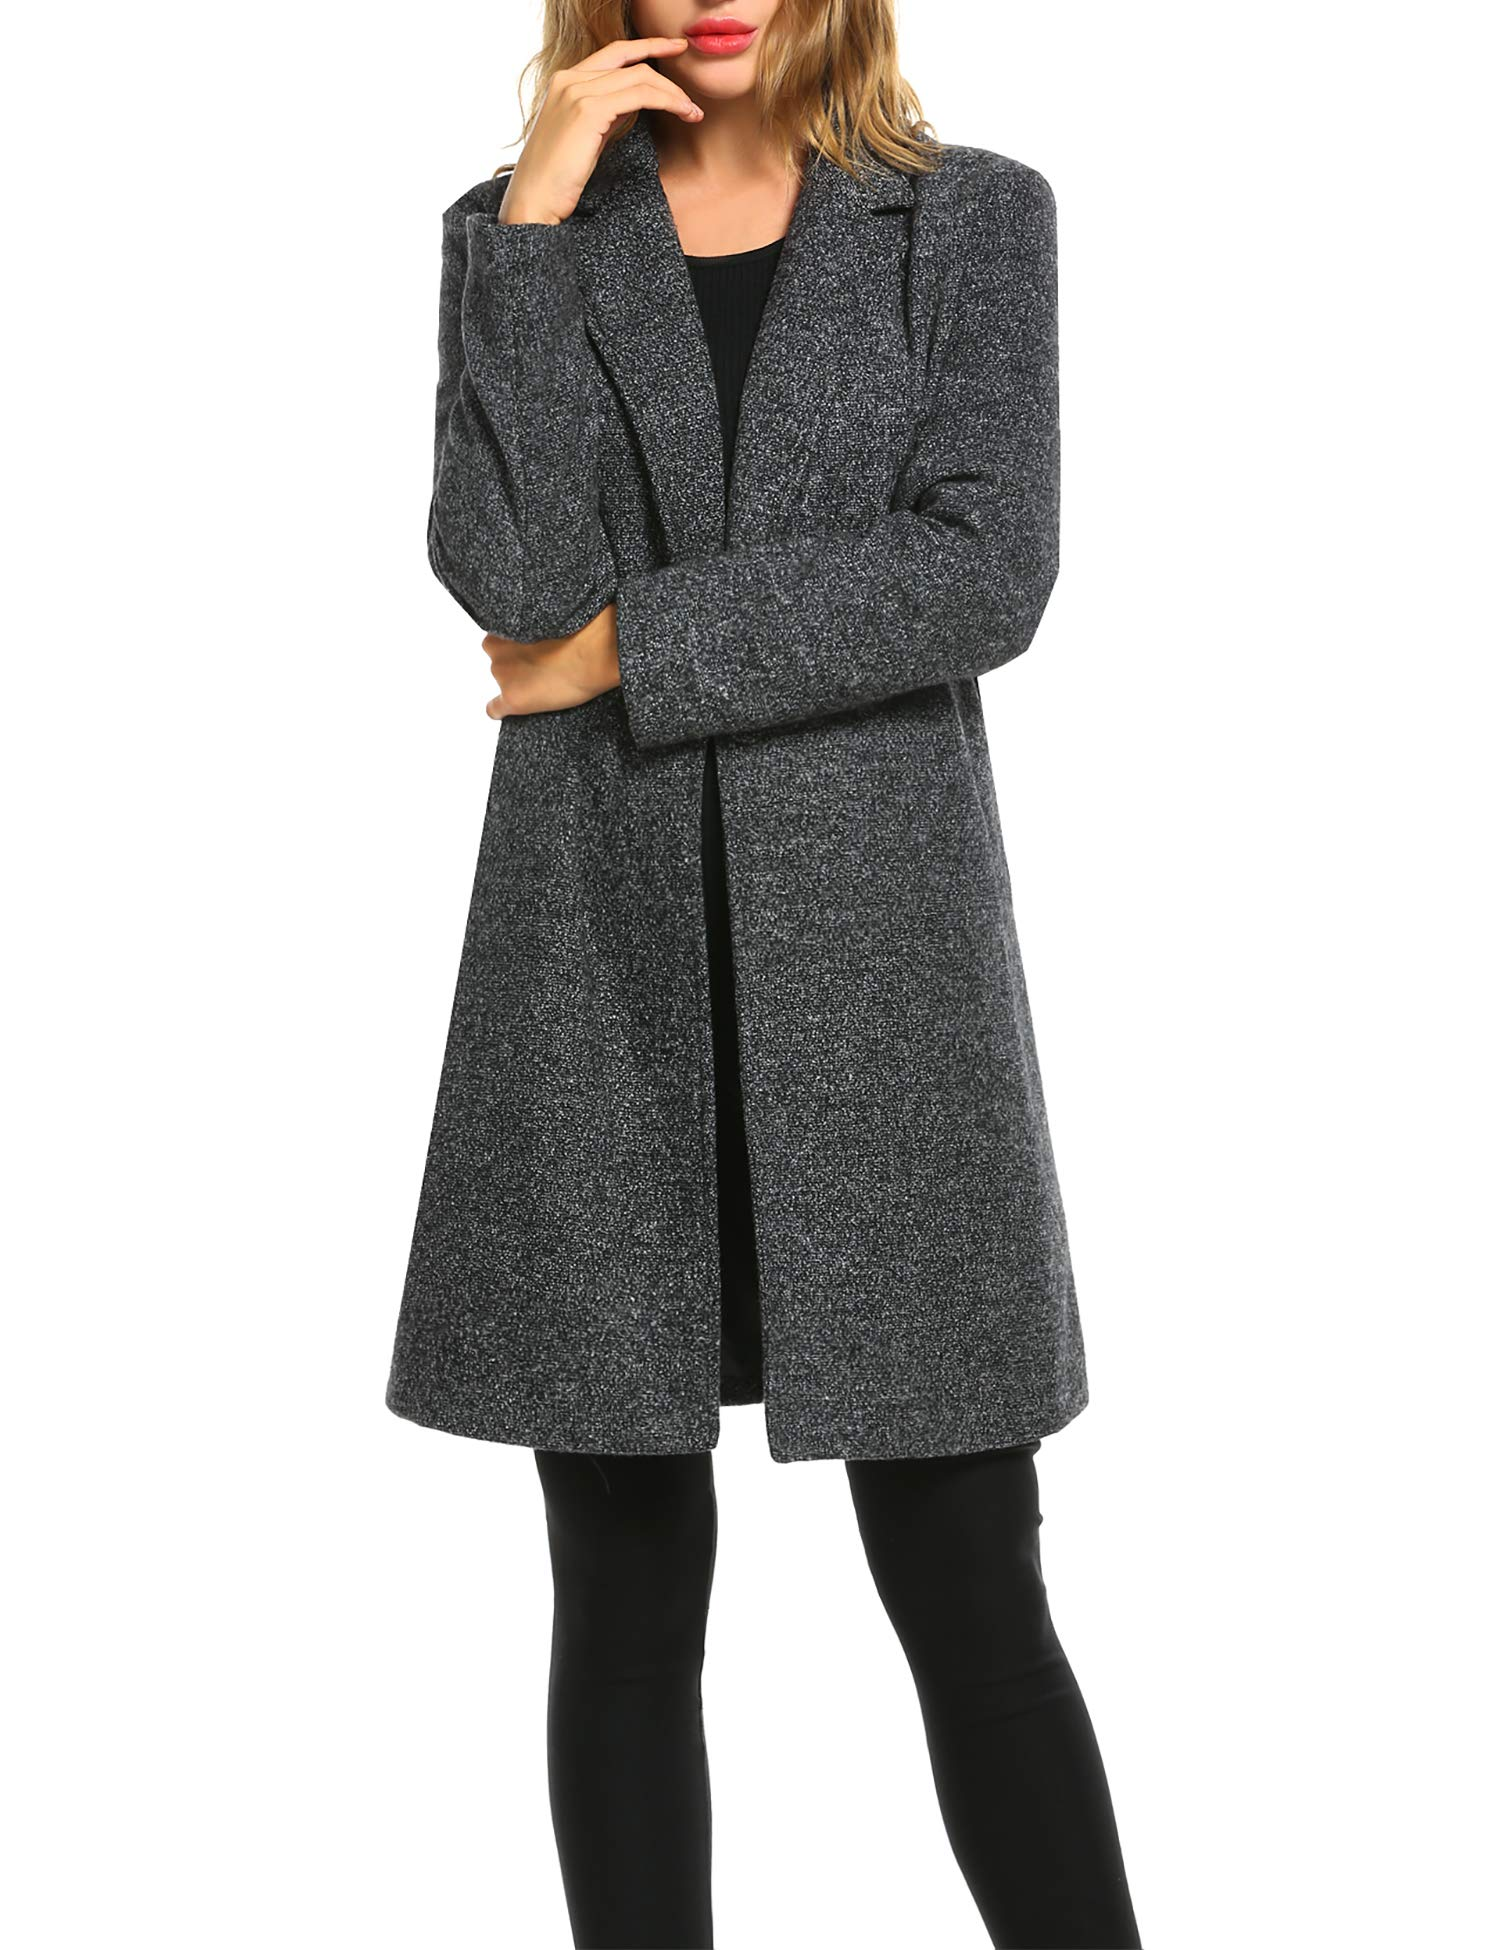 Zeagoo Women Long Trench Coat Single Breasted Wool Jacket Cardigan,Large,Black by Zeagoo